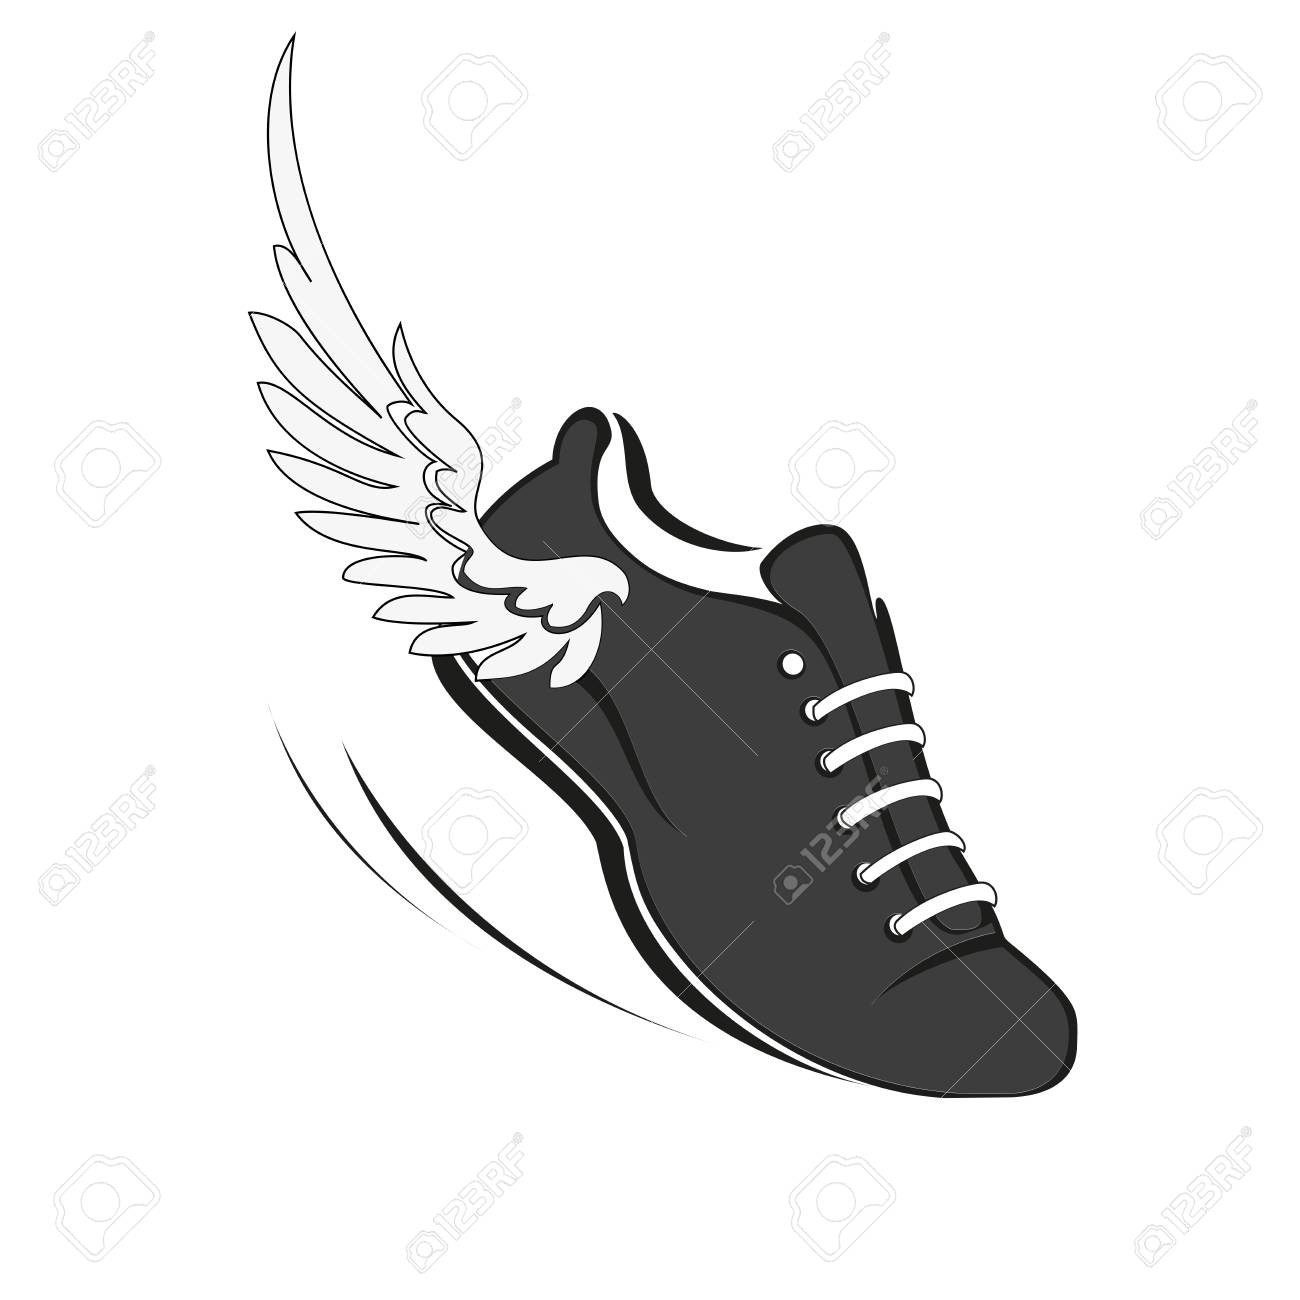 With A For RunningRunning Sports Shoe Shoes WingVector 6y7gIYbfv